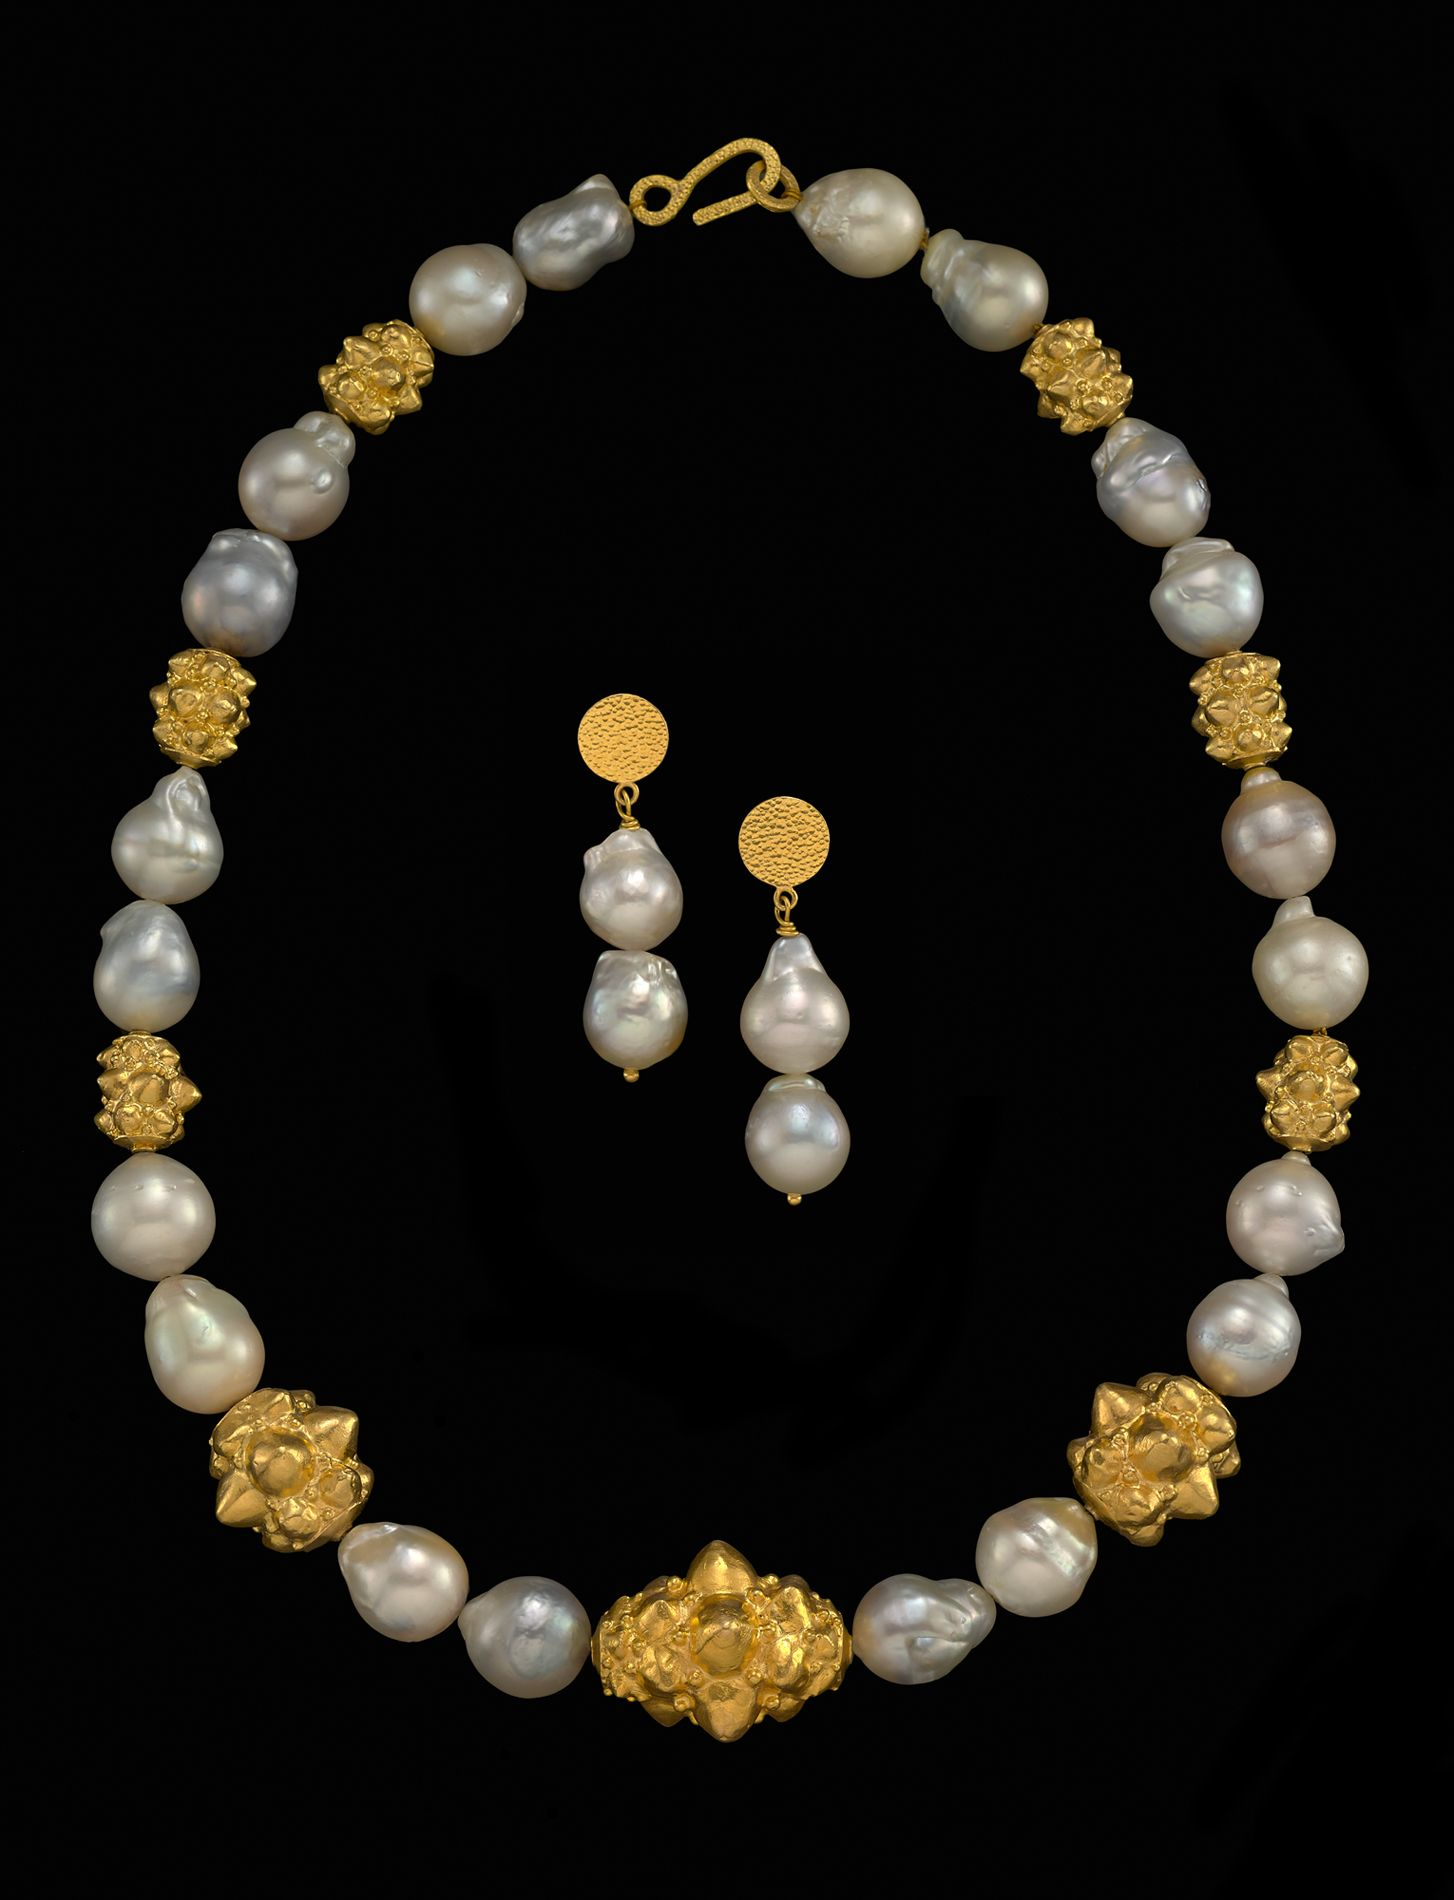 South Sea Pearls And Majapahit Style 22k Gold Beads Necklace